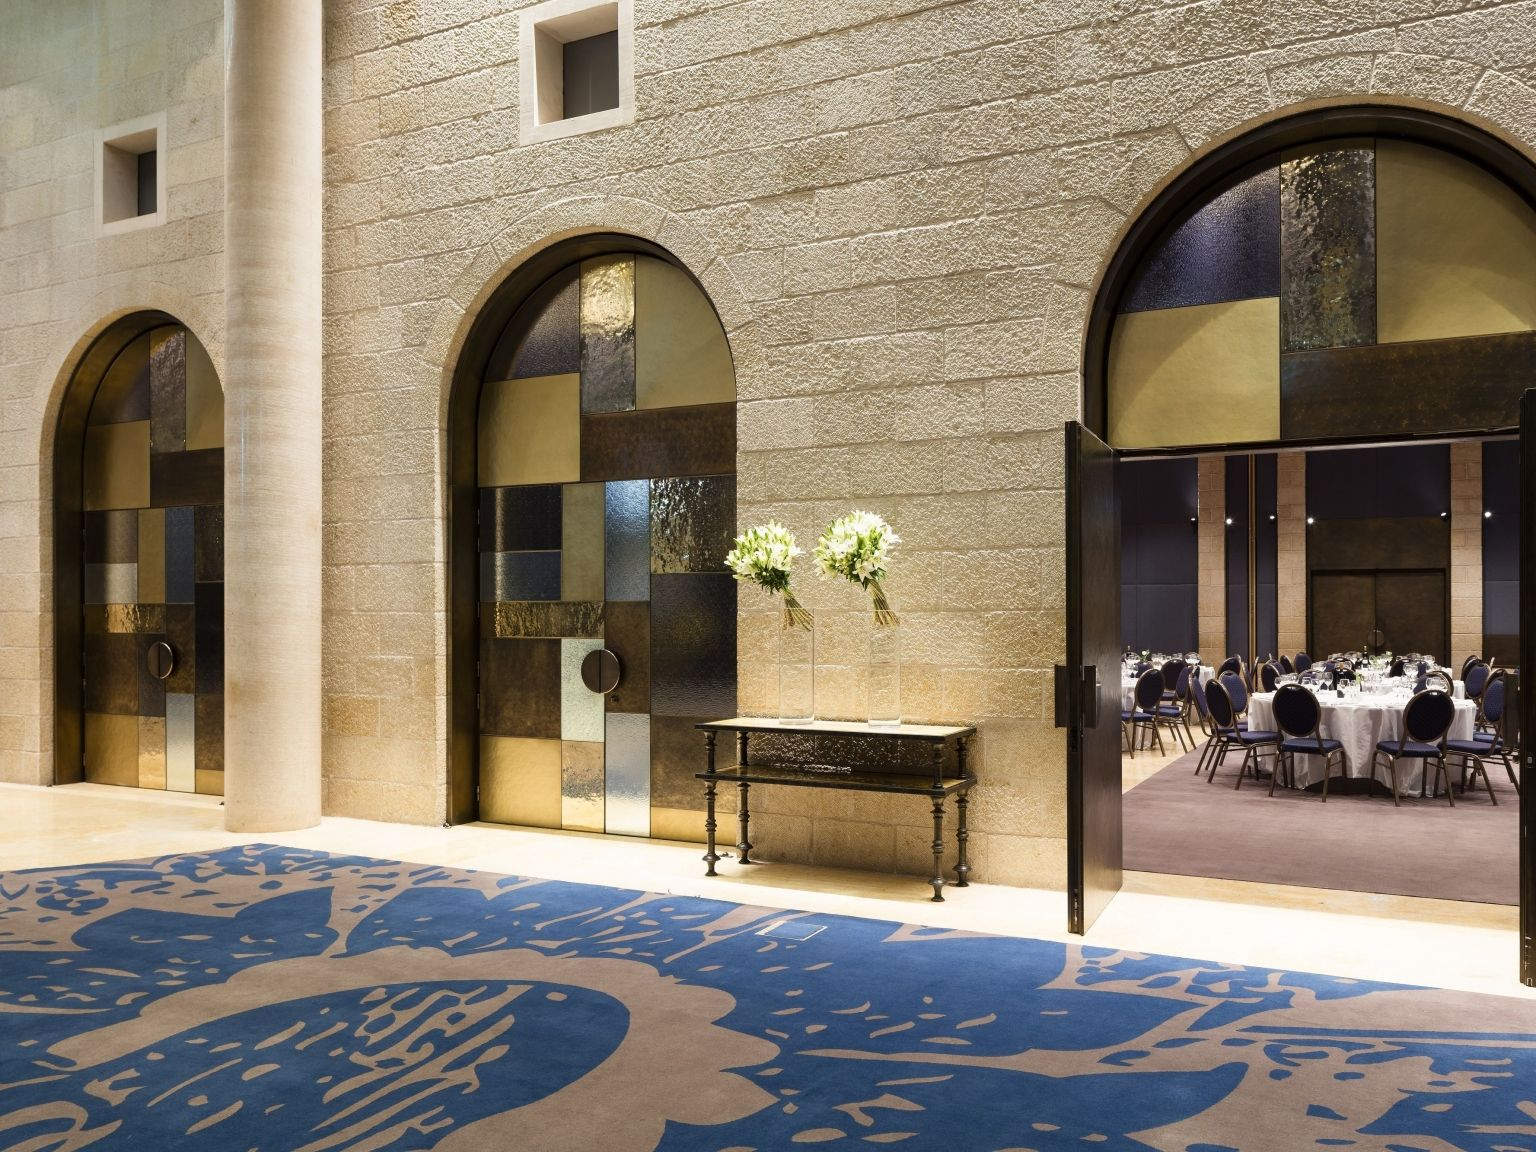 The Gates | David Citadel Hotel